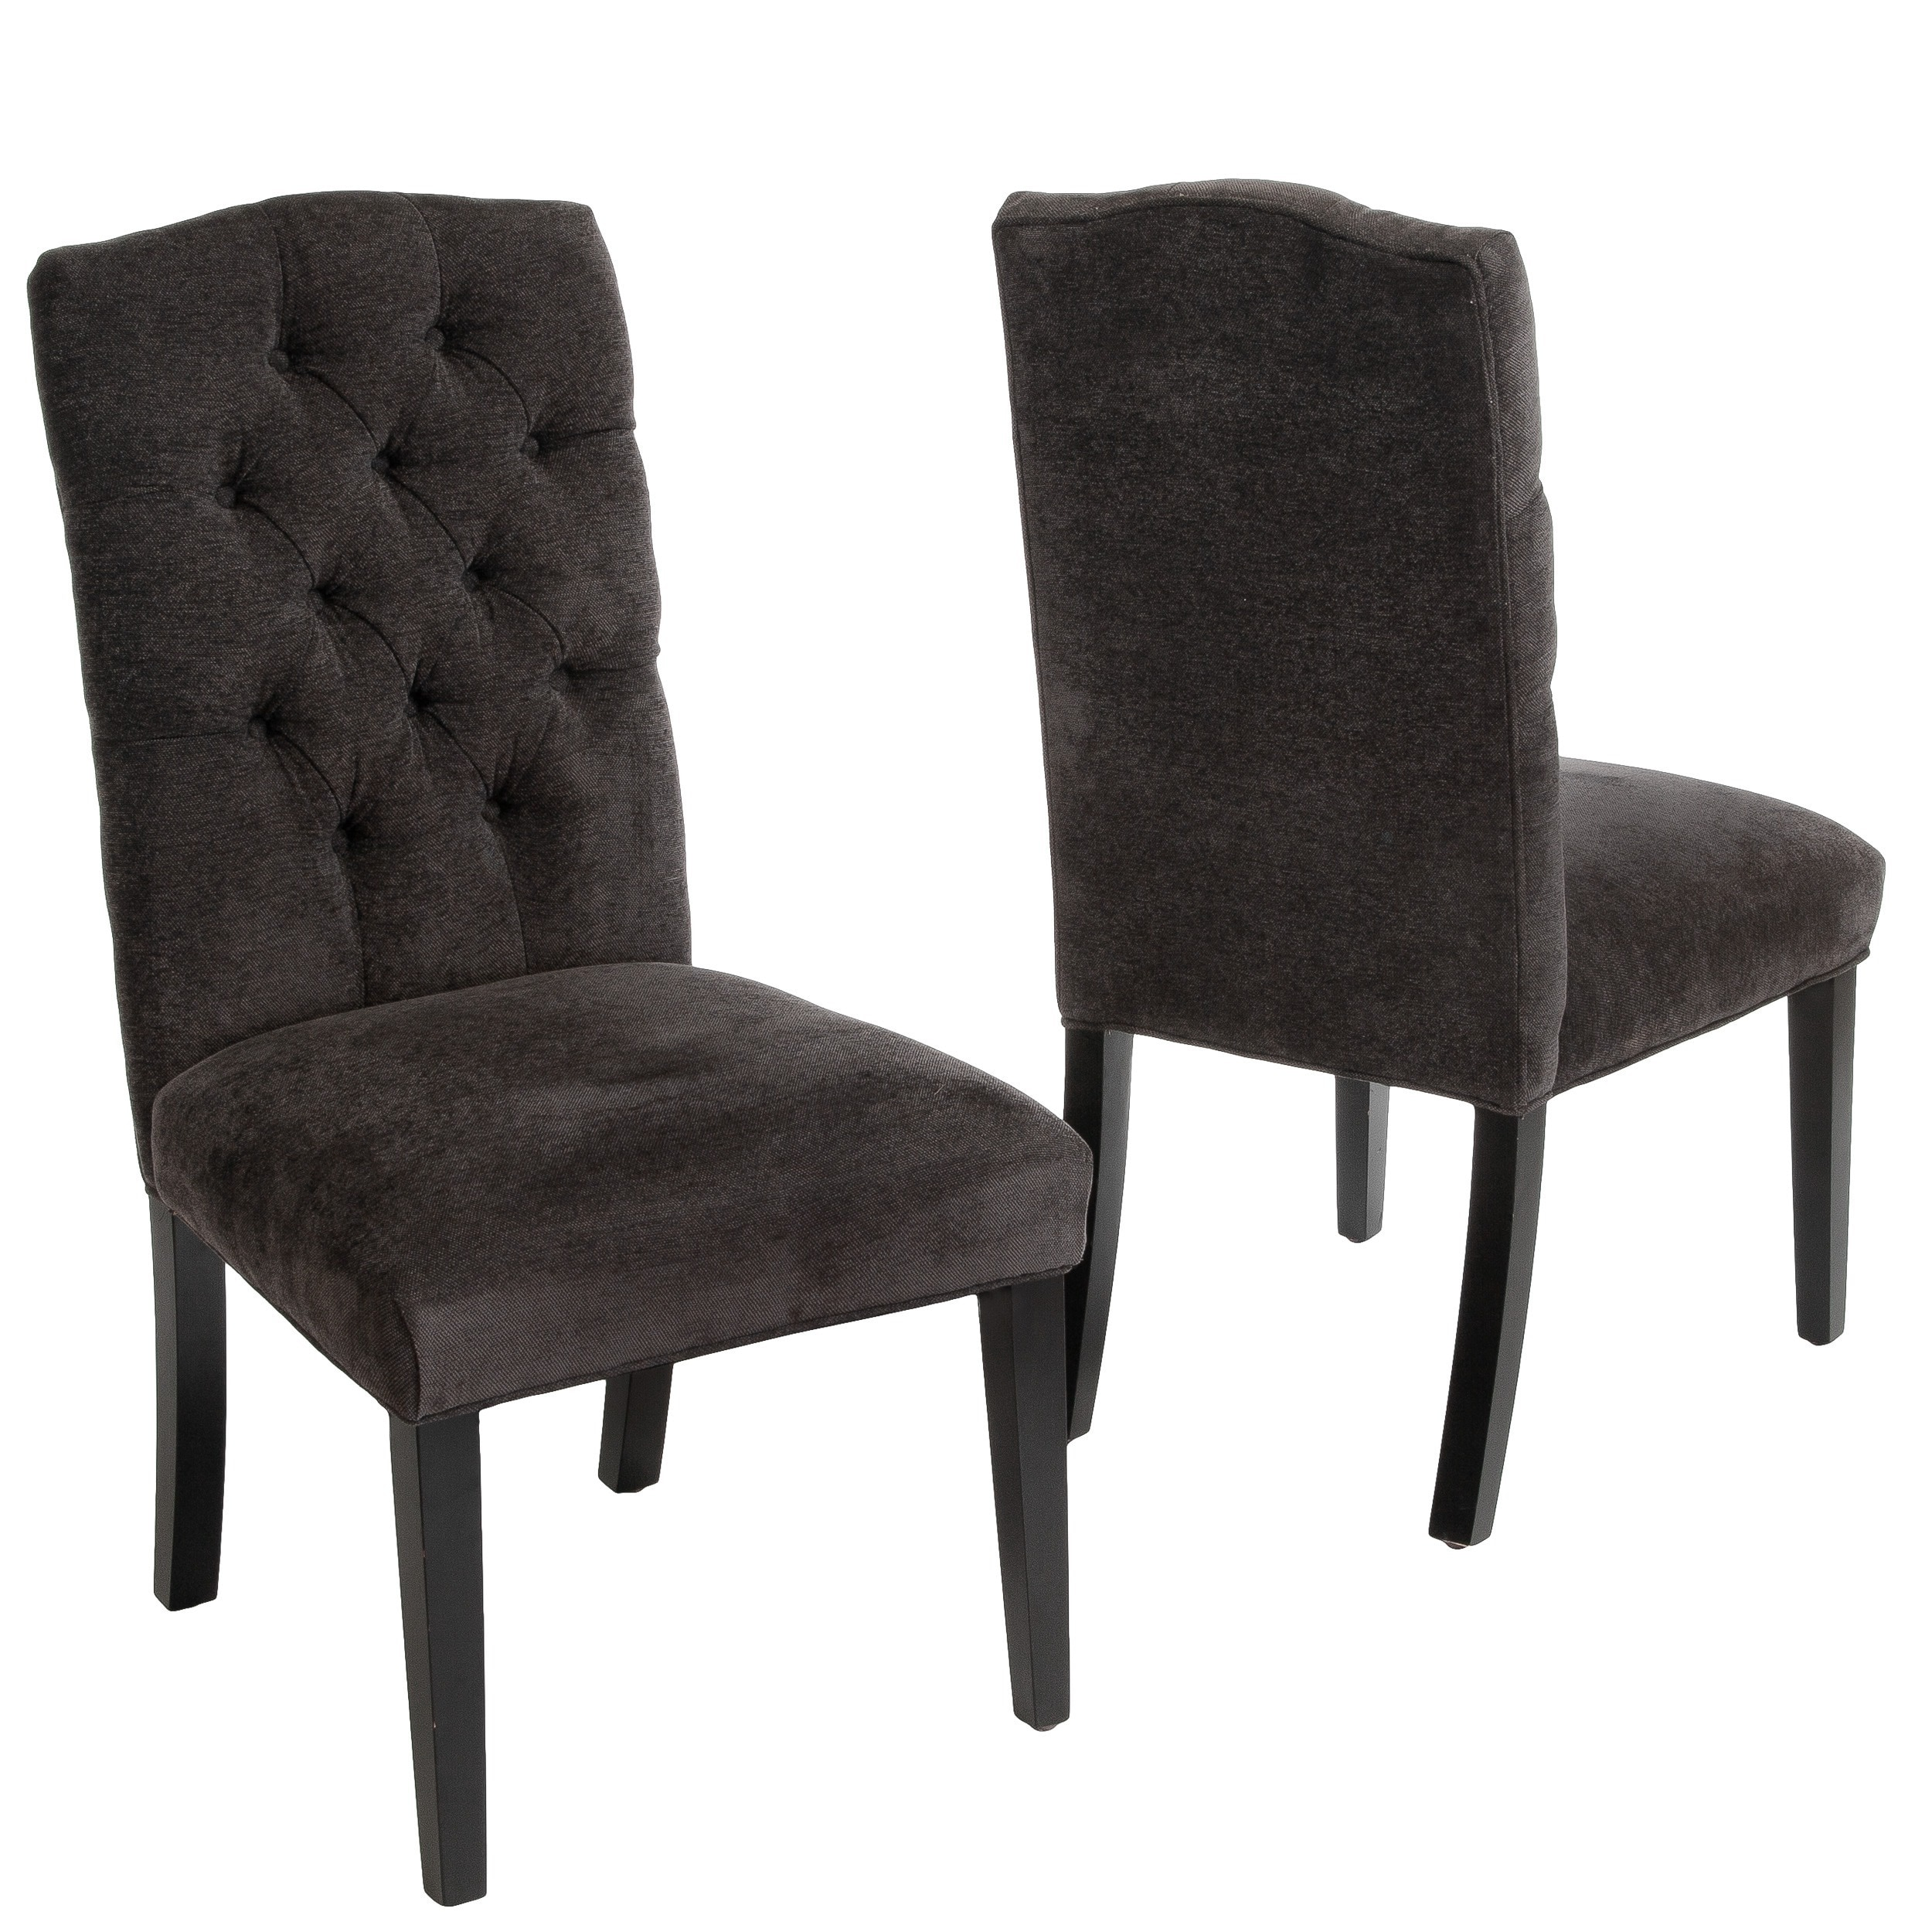 Dark Grey Dining Chairs Buy Kitchen And Dining Room Chairs Online At Overstock